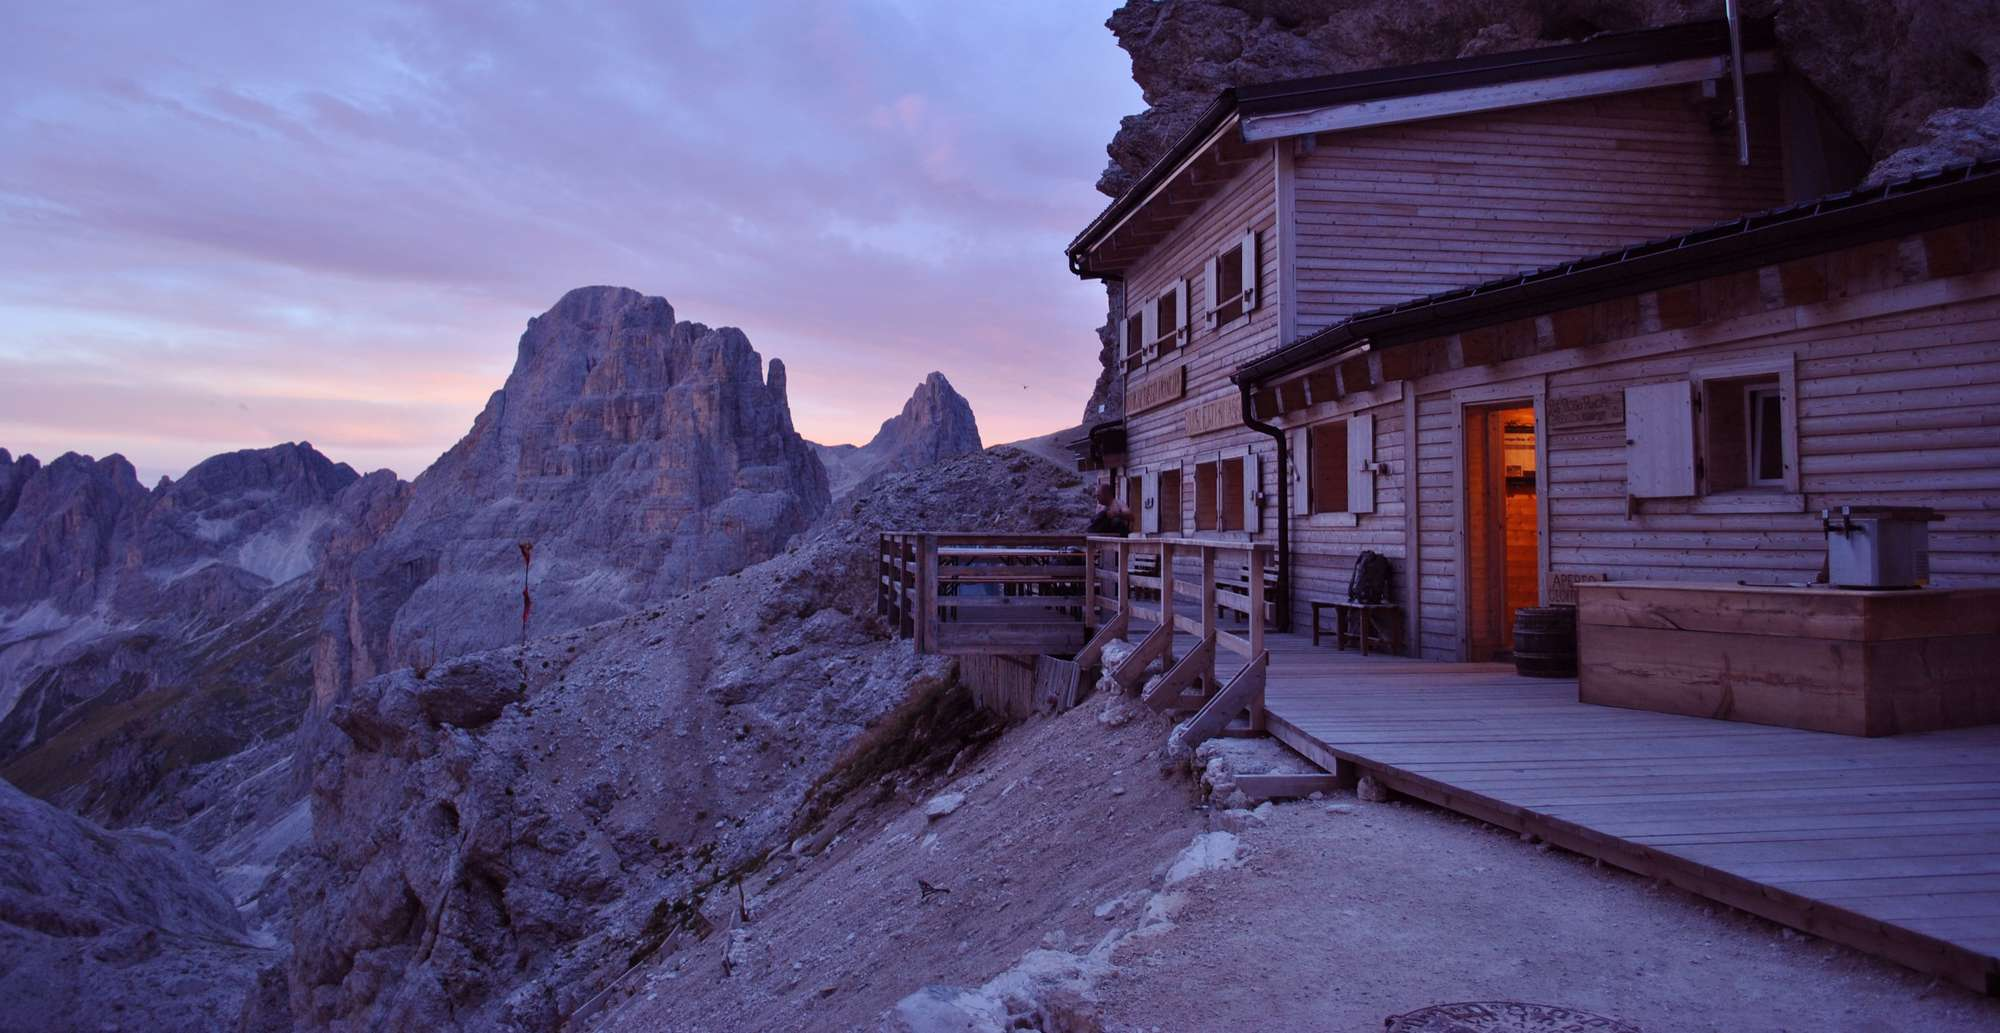 Short stay 2 notti in hotel + notte in rifugio, sotto le stelle!